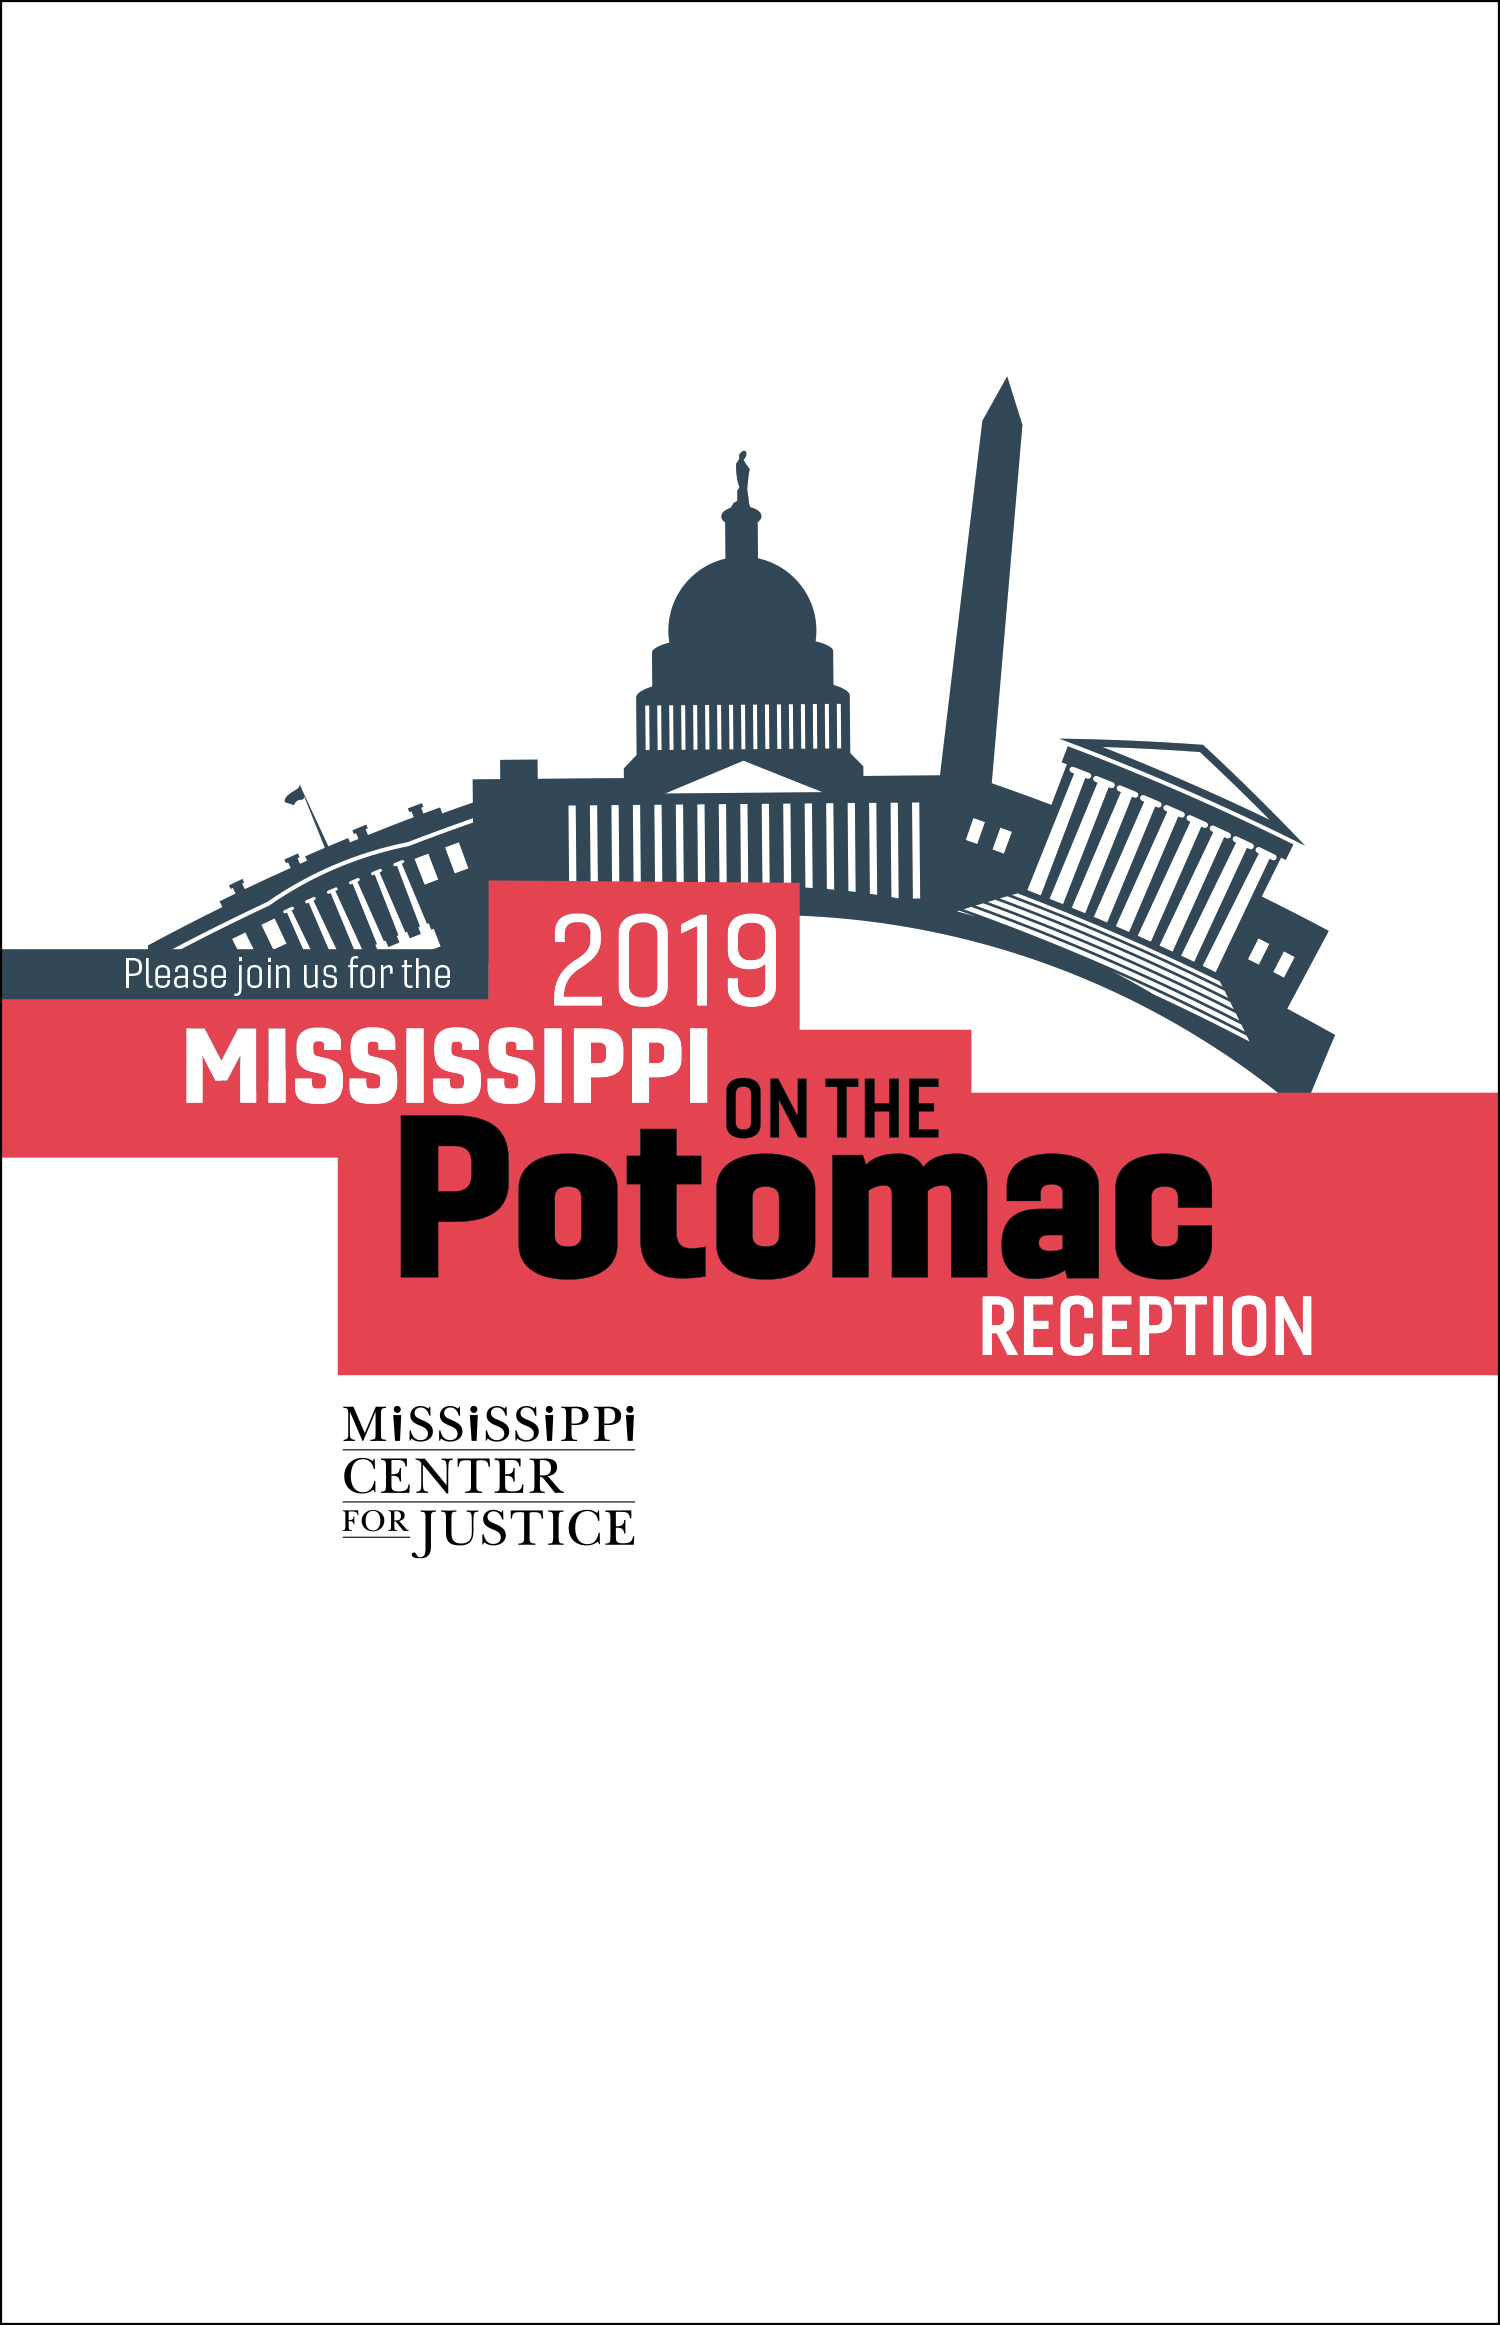 invite_potomac2019-4p to DT 1.jpg